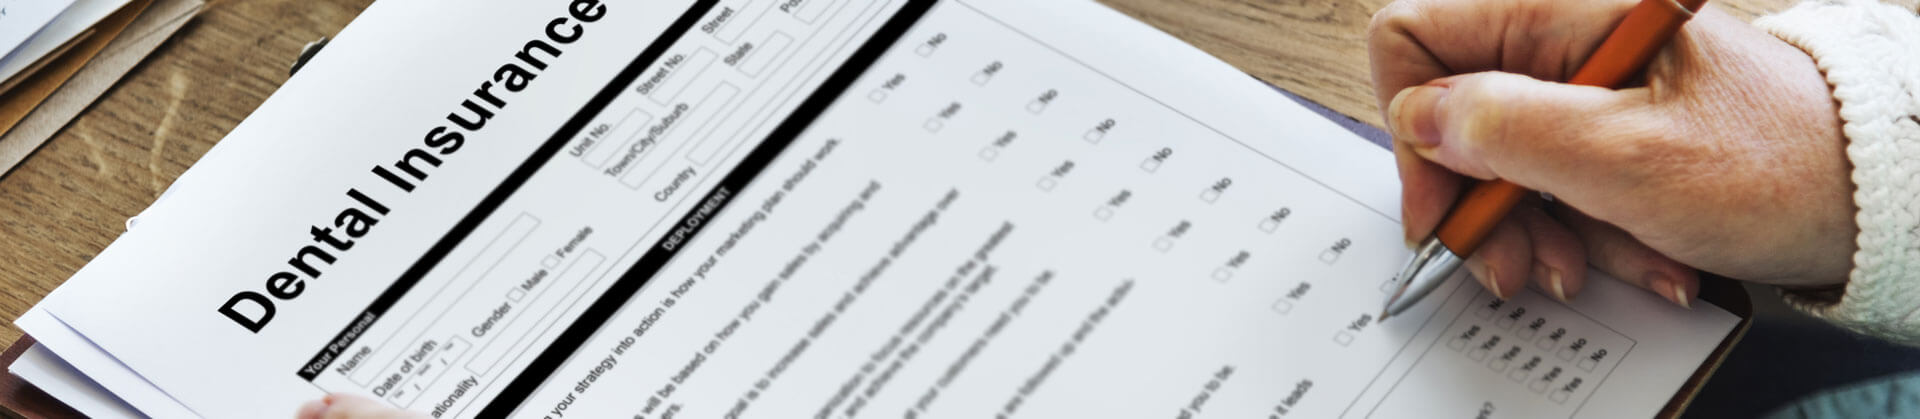 Cropped view of a dental Insurance form